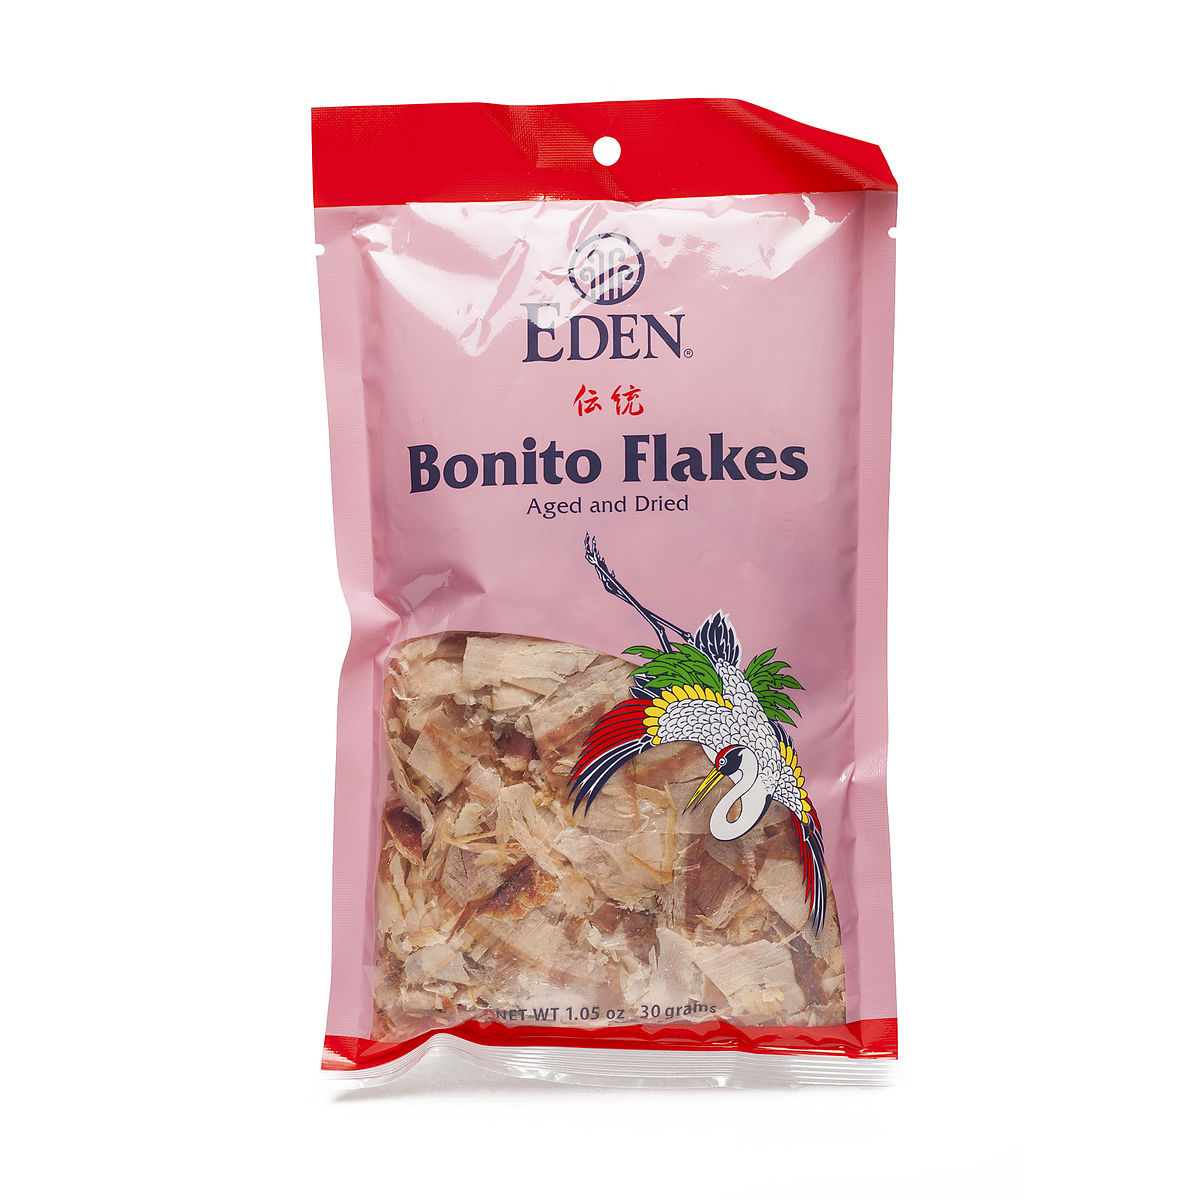 Oz bonito flakes by eden foods thrive market for Bonito fish flakes